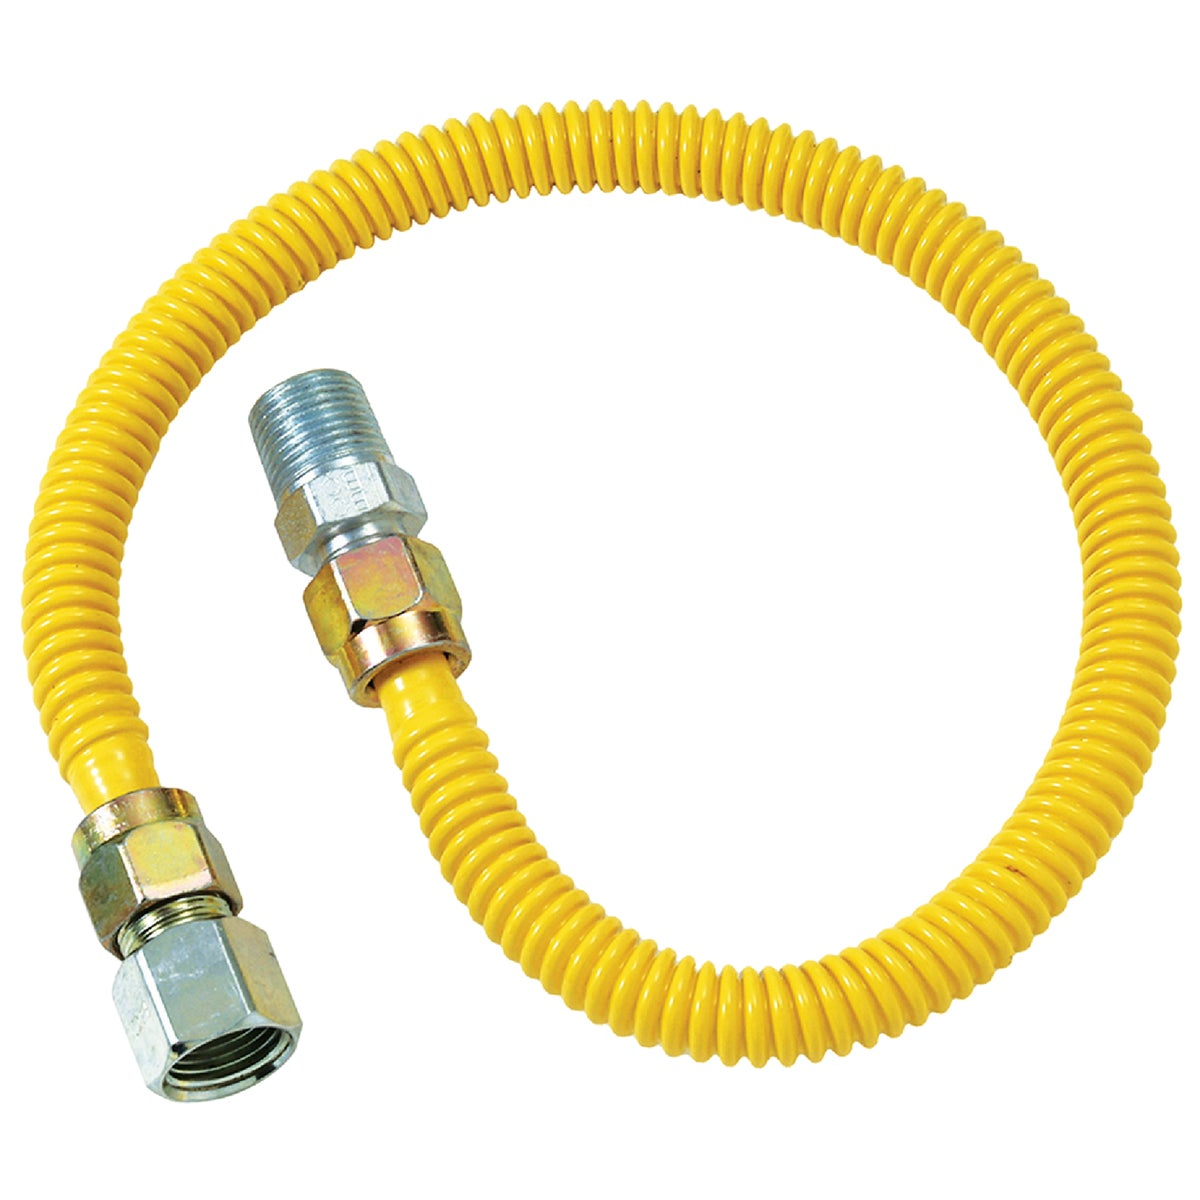 1/2X48 GAS CONNECTOR